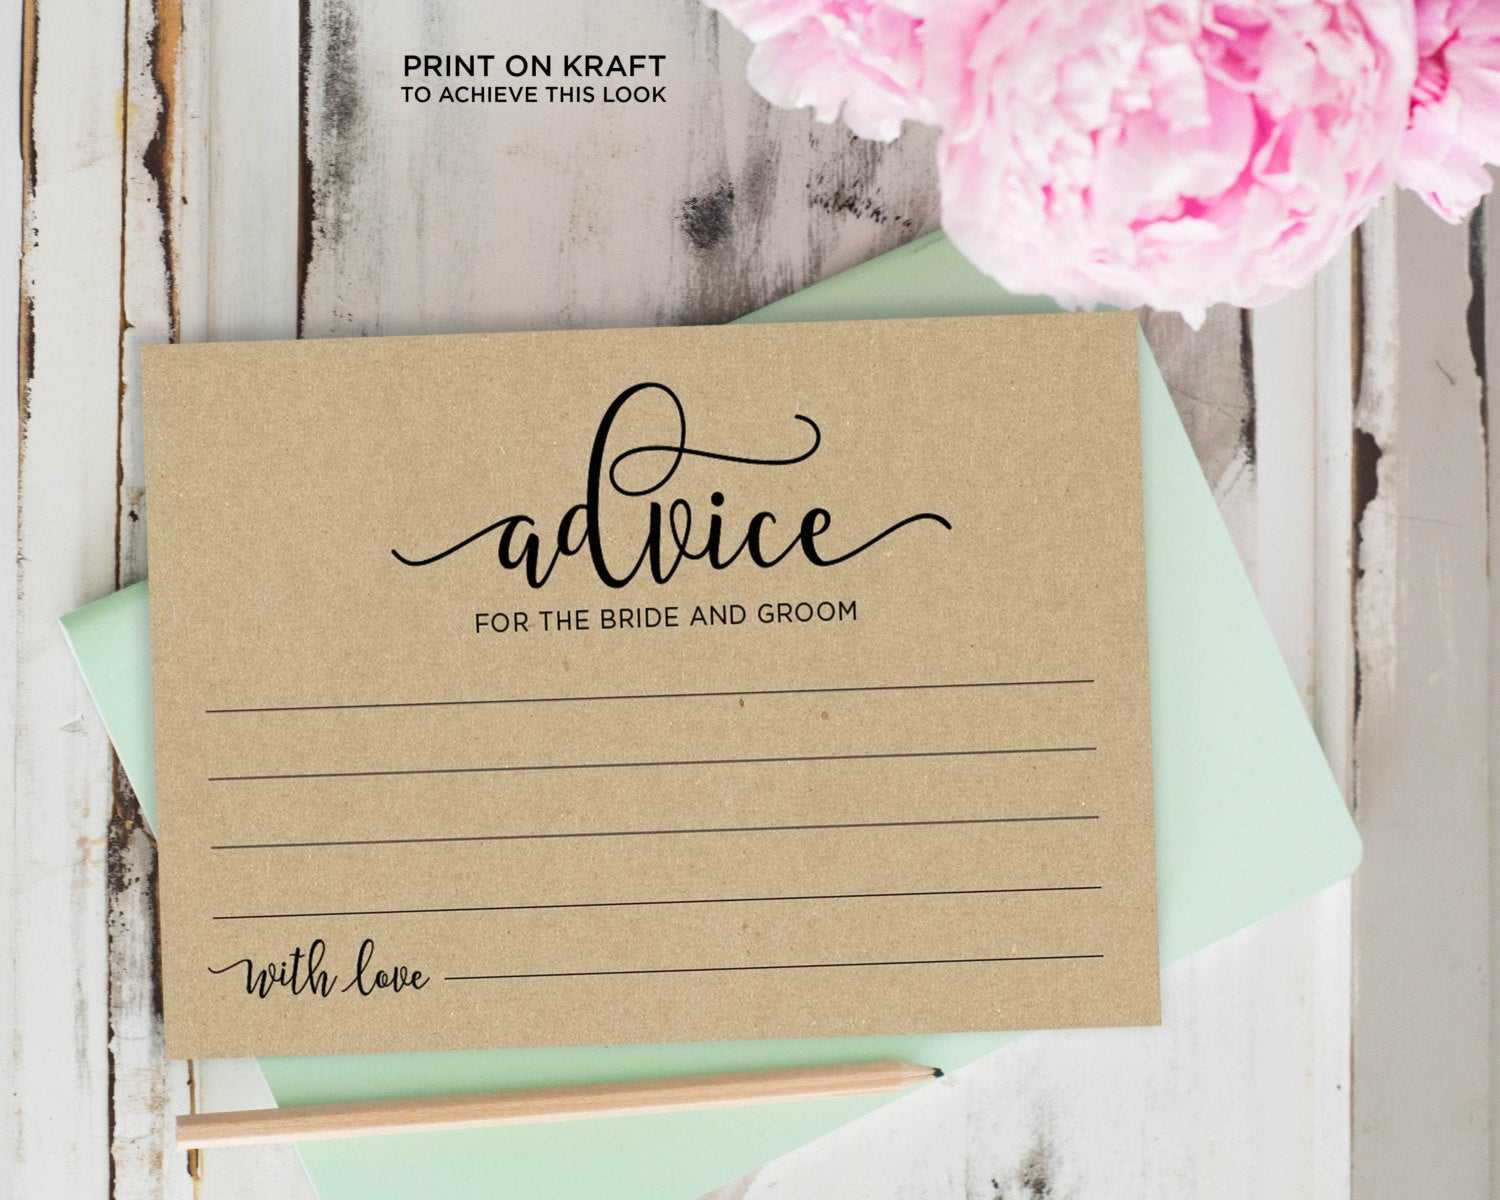 Wedding Advice Cards Template ] – Marriage Advice Cards Pack For Marriage Advice Cards Templates